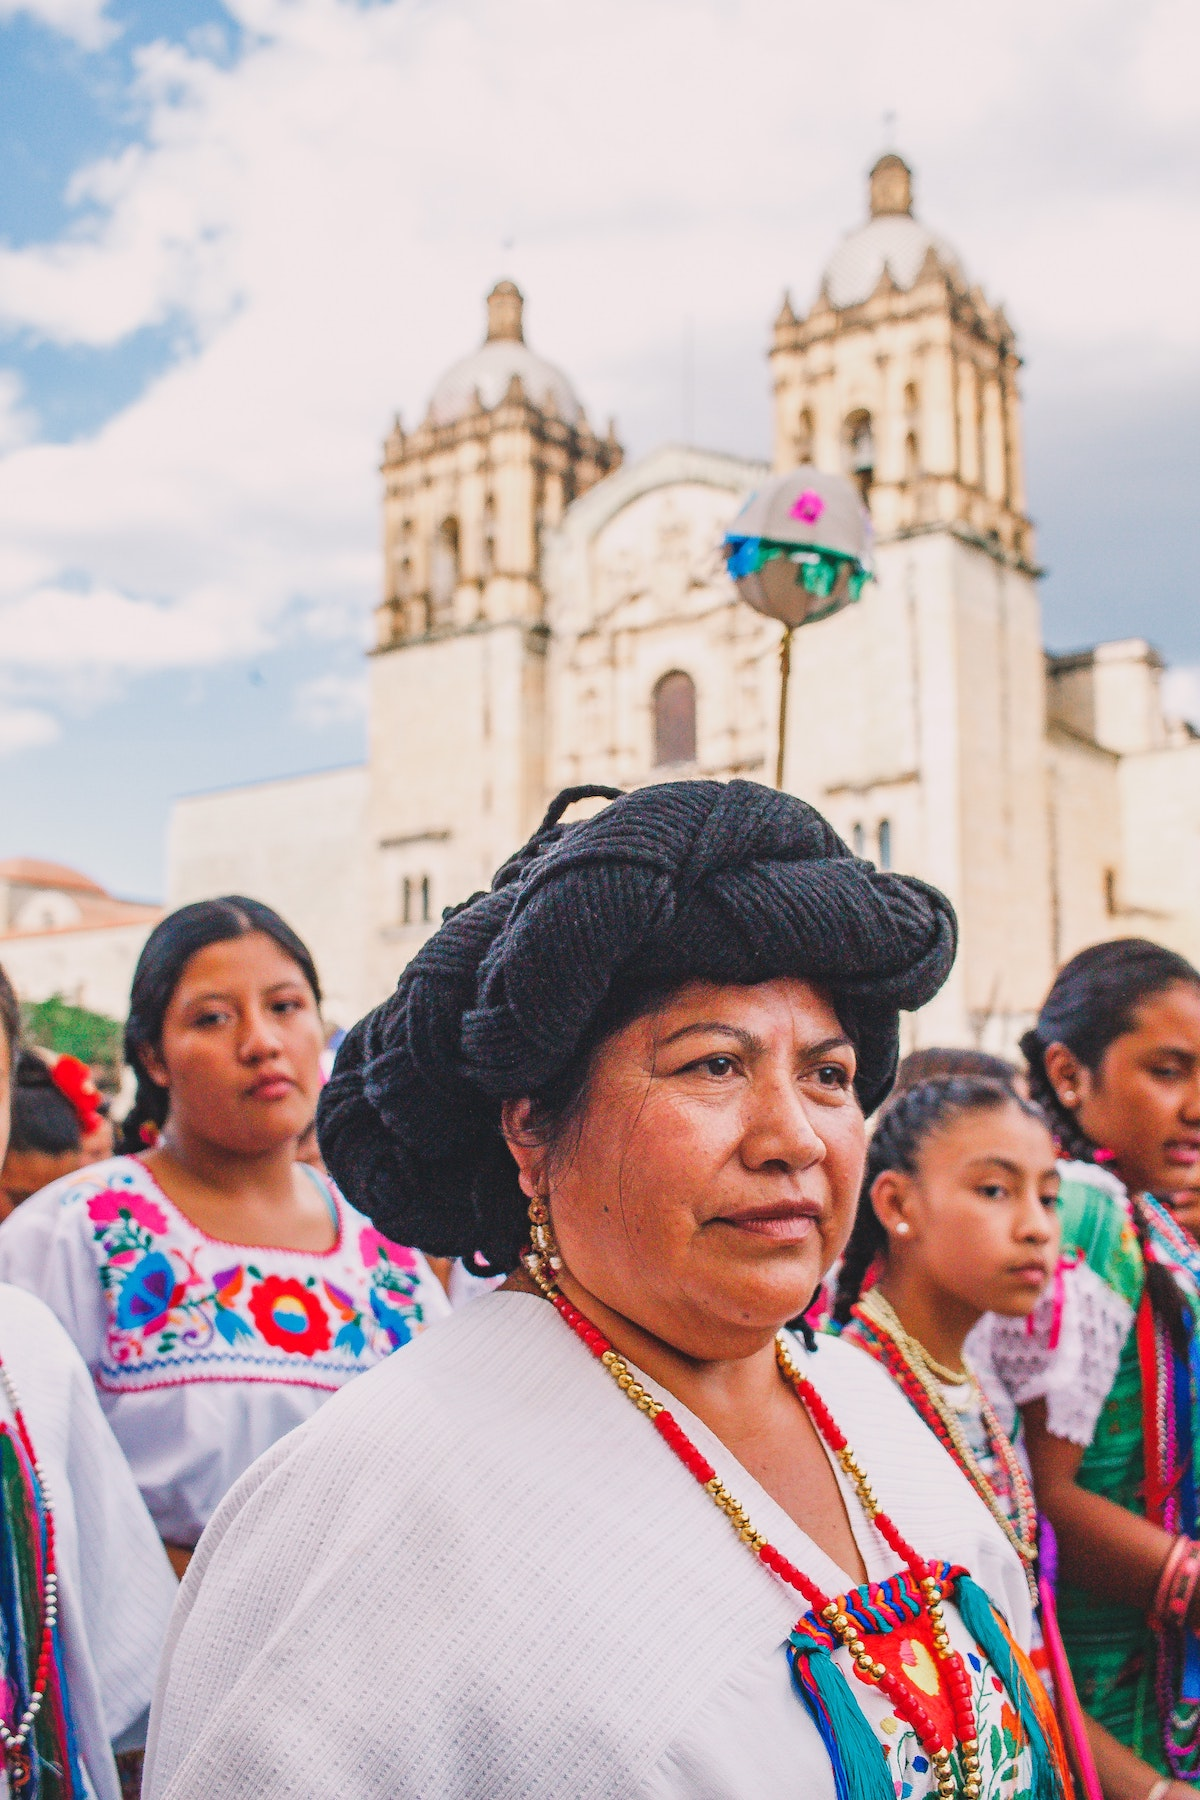 Mexico accuses major fashion brands of cultural appropriation, breaking news, luxiders, luxiders breaking news, fashion news, sustainable fashion, Zara, Anthropologie, patowl, indigenous communities, Mexican communities, Carolina Herrera, Isabel Marant, sustainable fashion, Mexican government, protection of local communities, artisanal production, artisanal fashion, Mexico